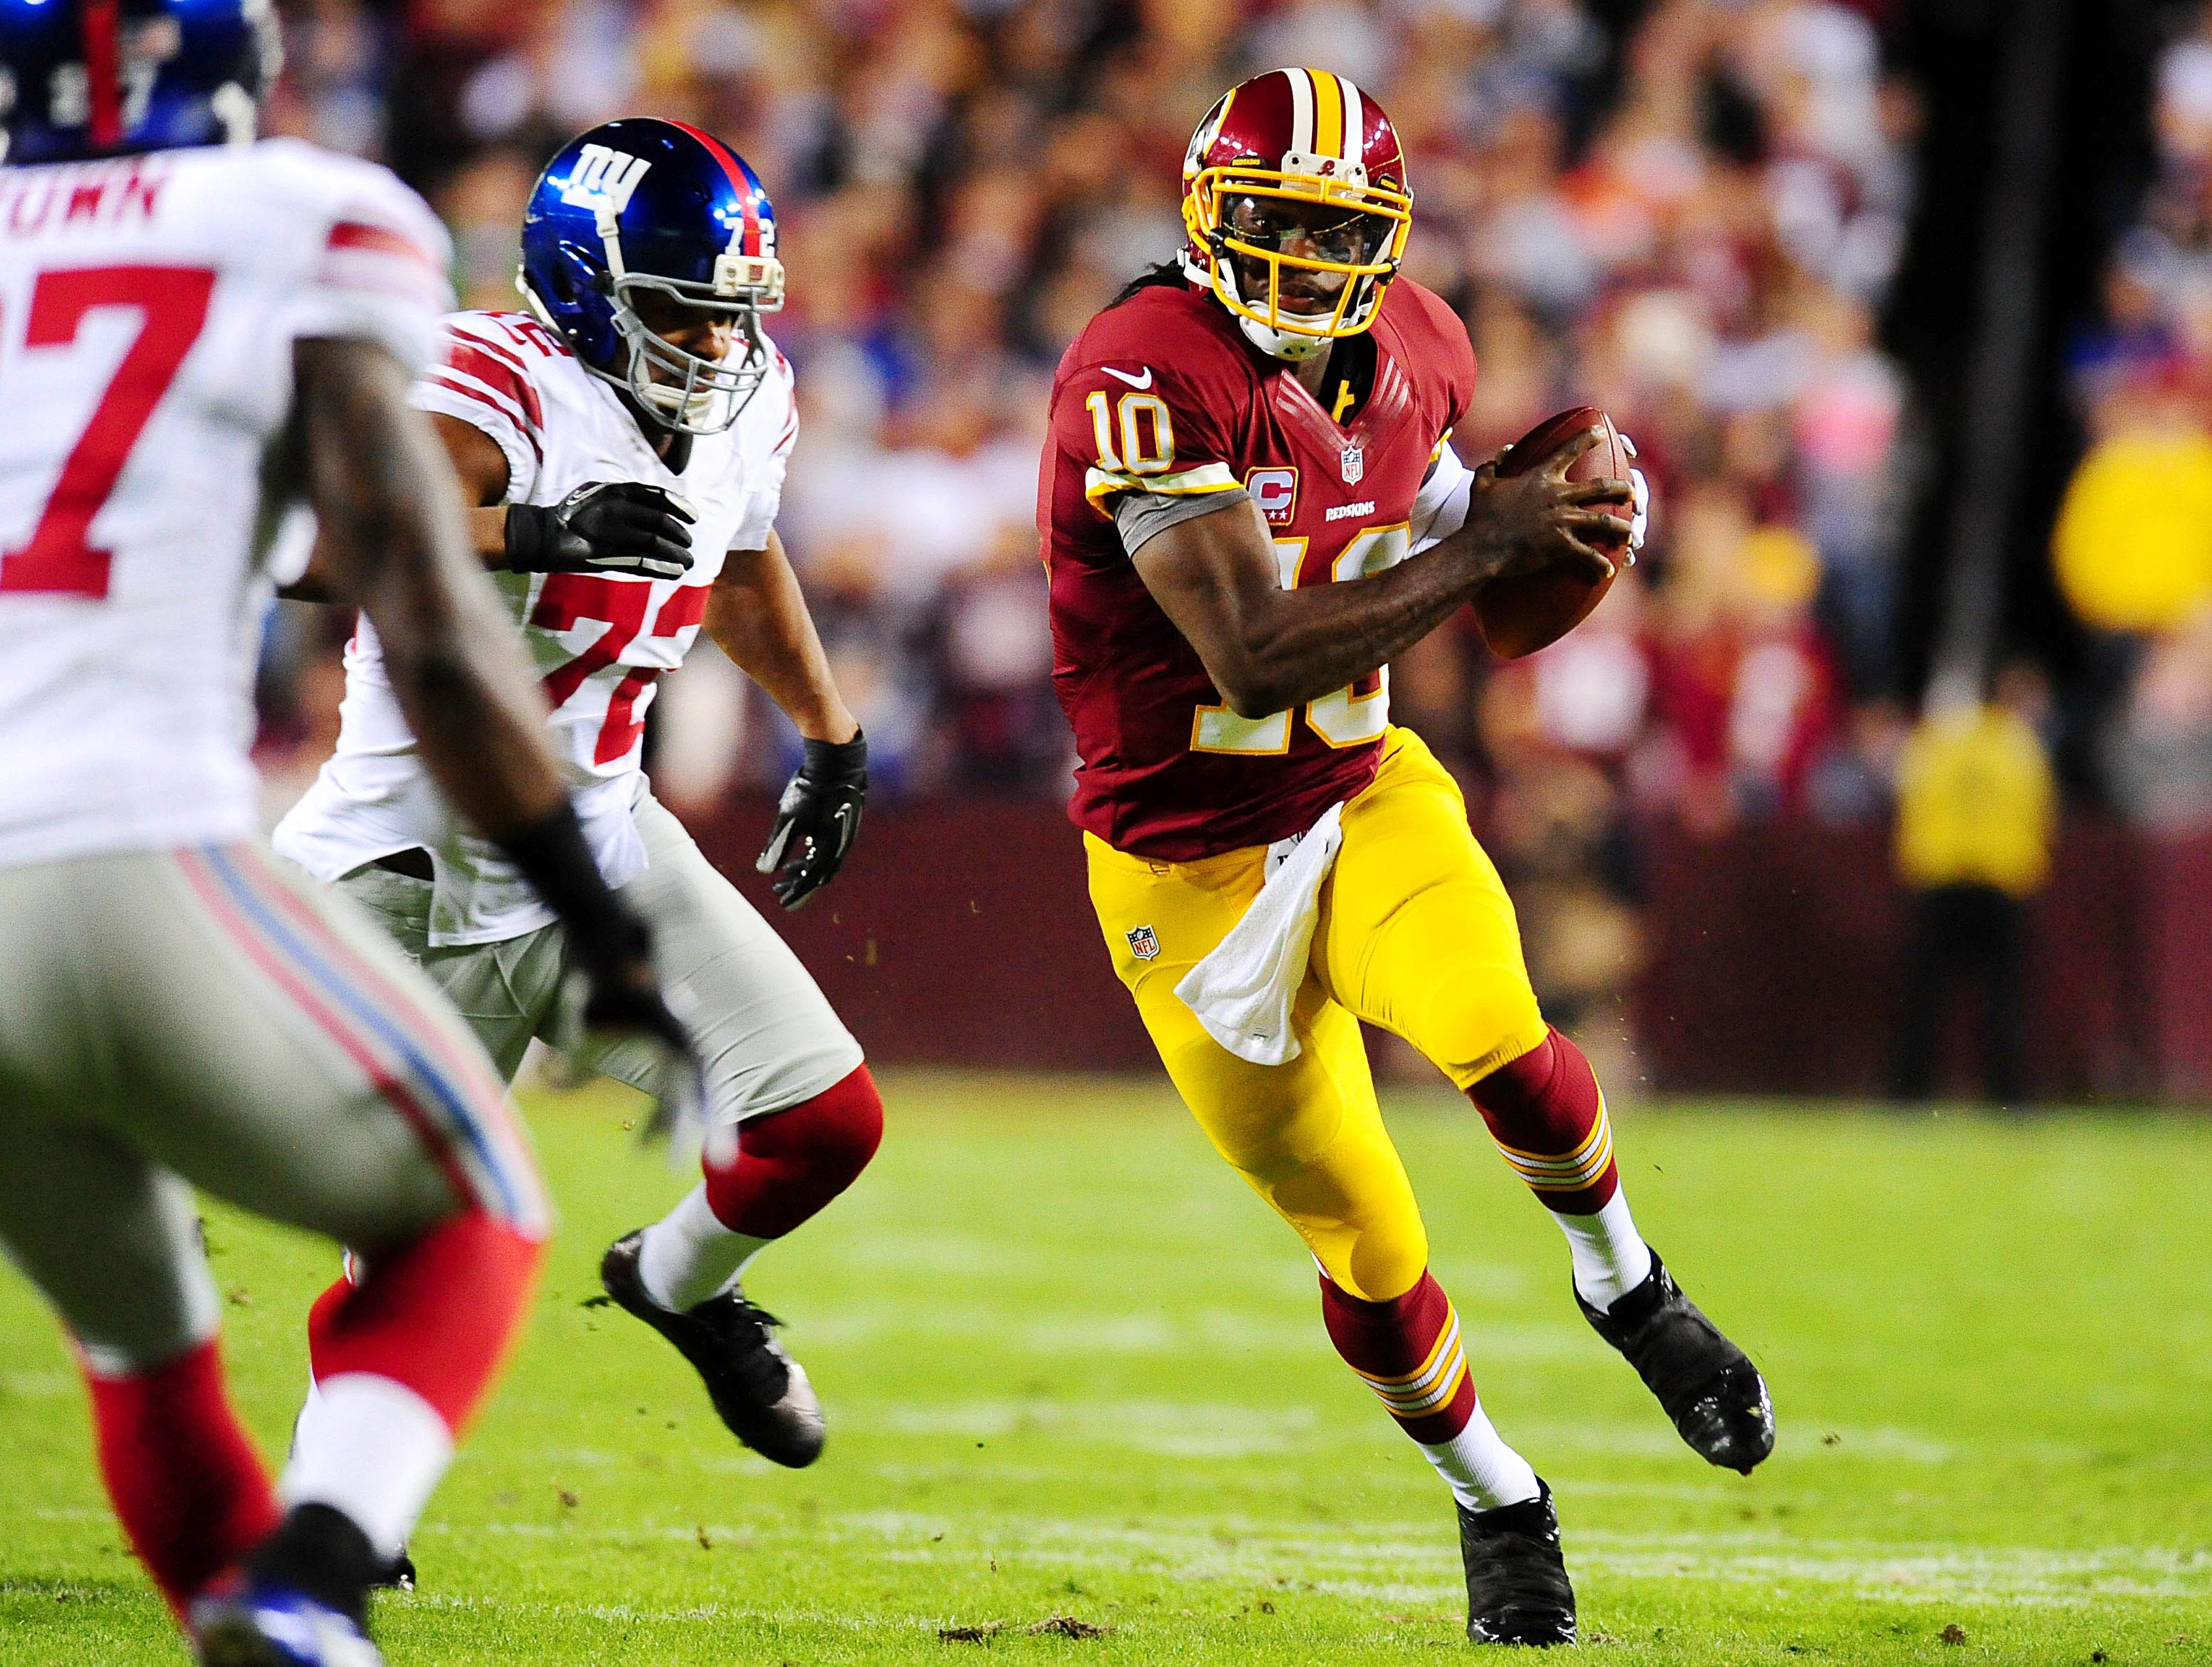 10. Robert Griffin III, Washington Redskins